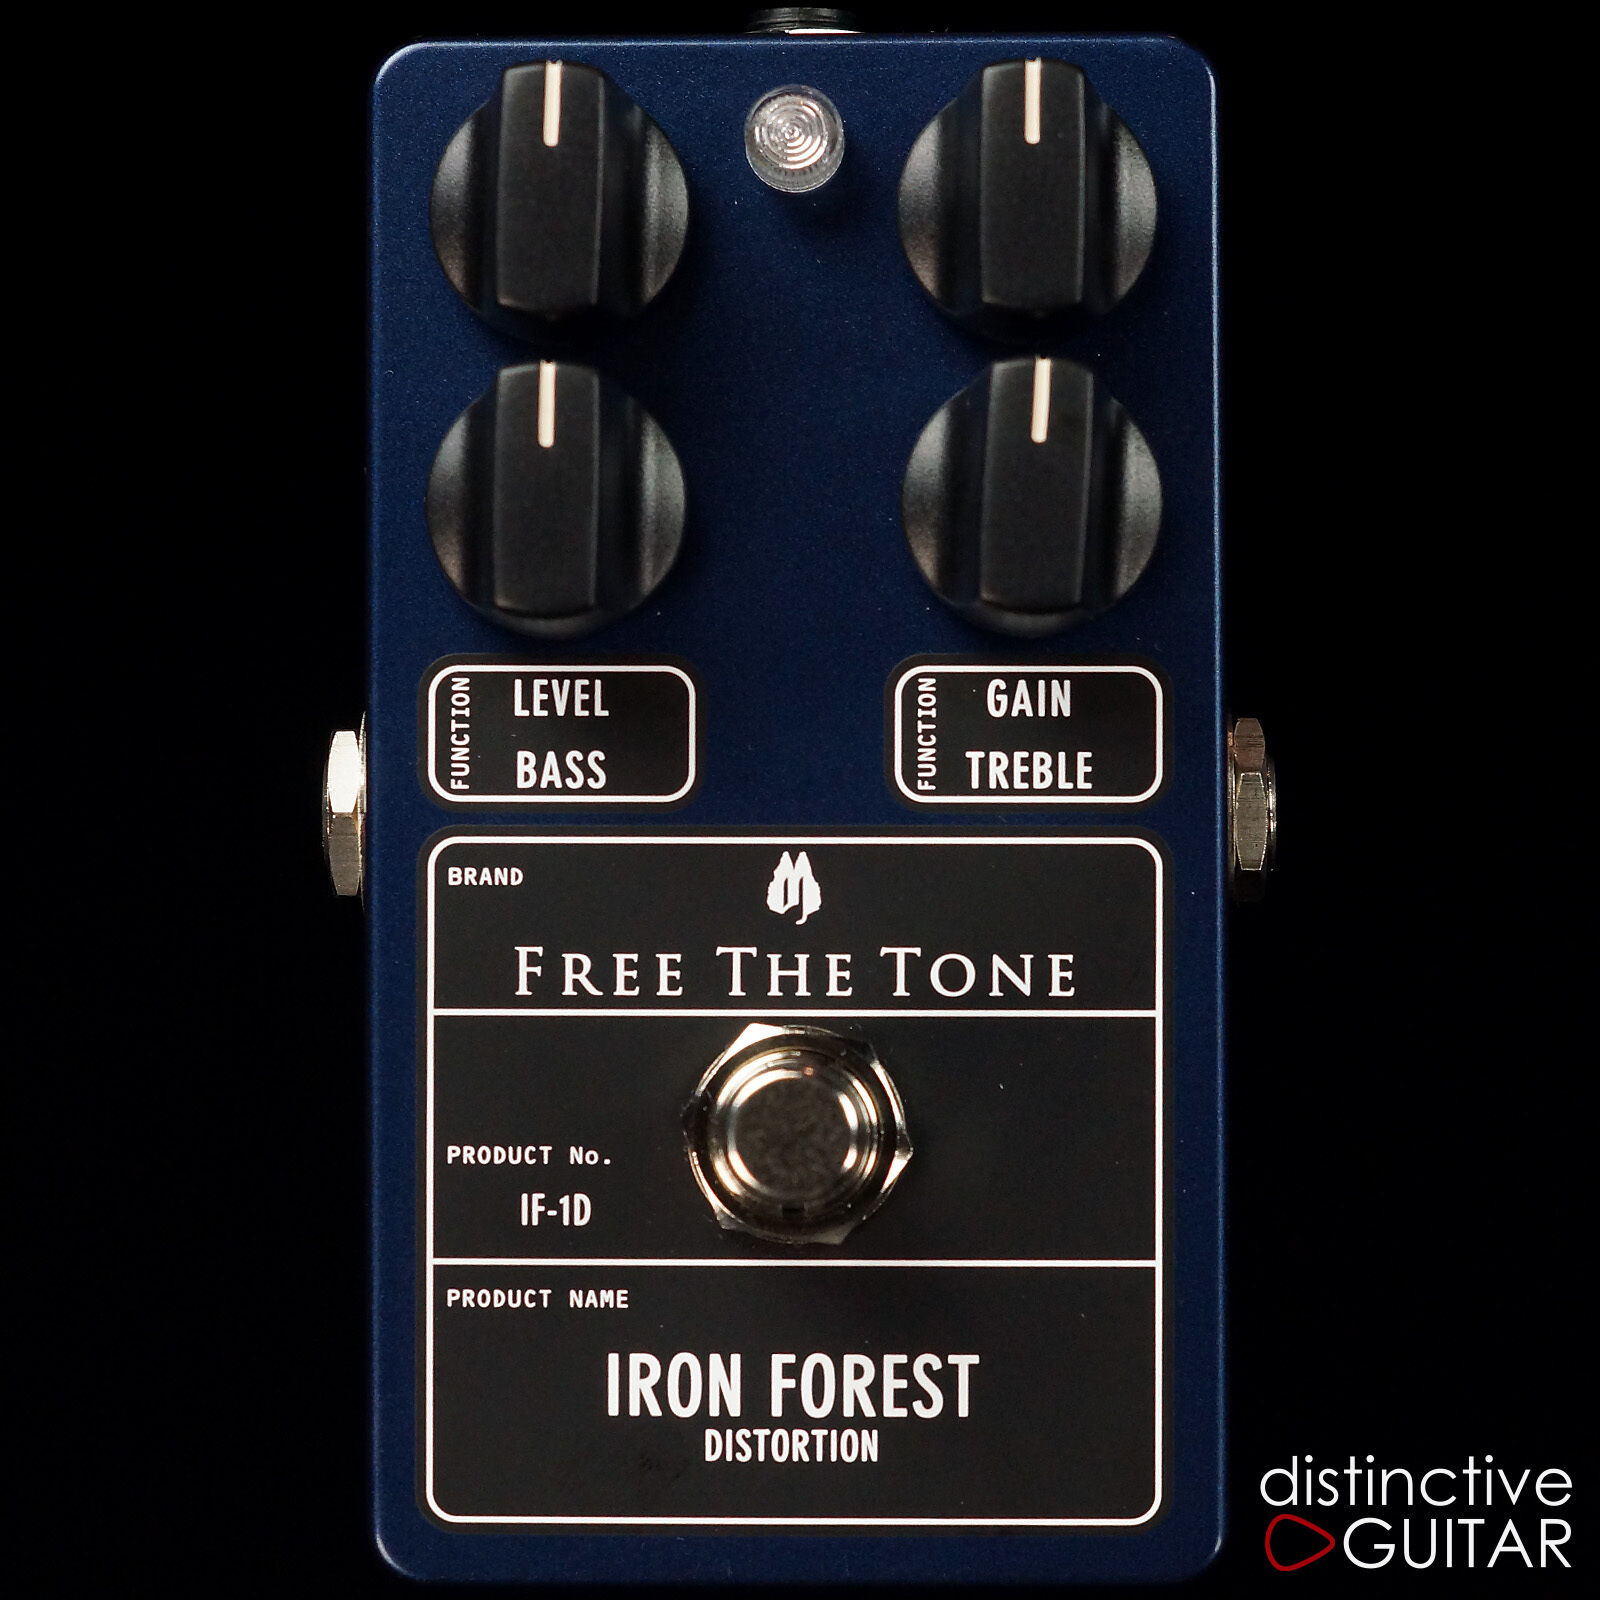 NEW FREE THE TONE IF1D IRON FOREST DISTORTION BOUTIQUE TOUCH SENSITIVE FX PEDAL